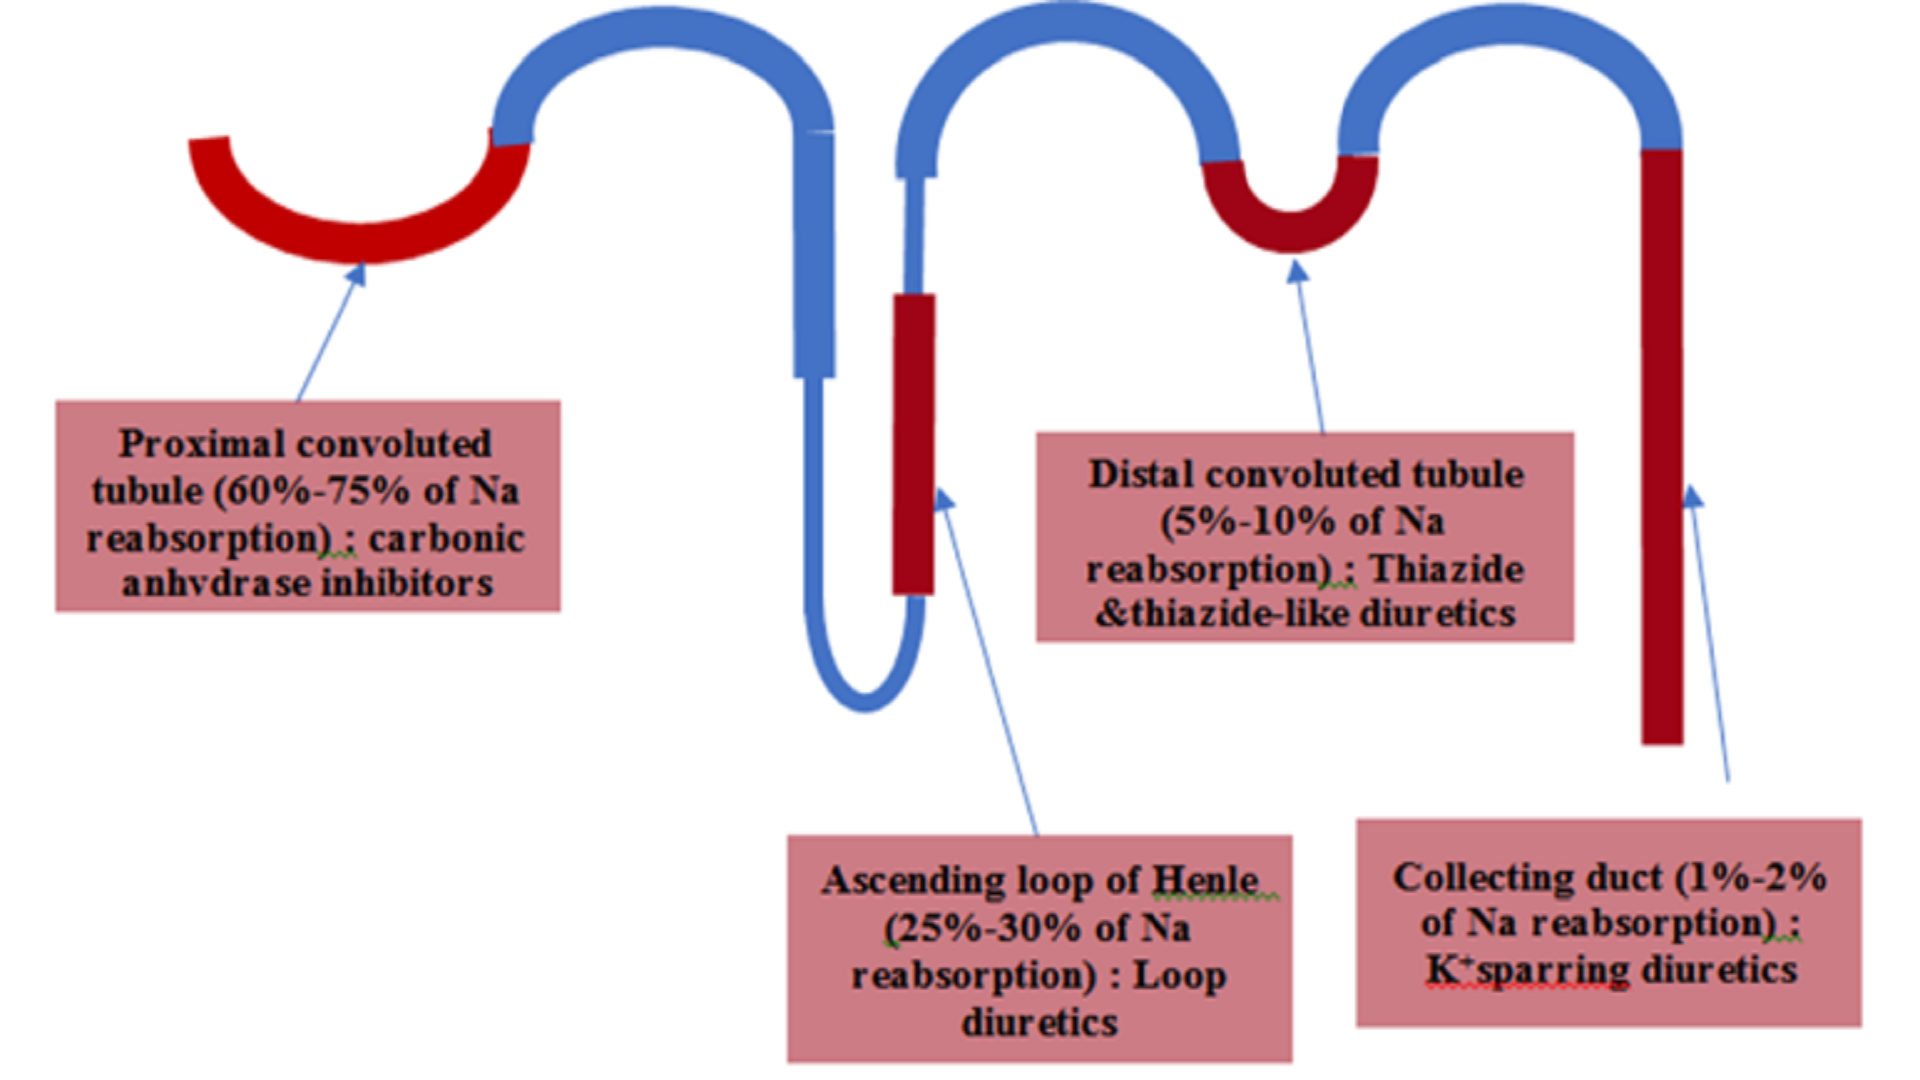 Diuretic Resistance in Acute Decompensated Heart Failure: Management strategies